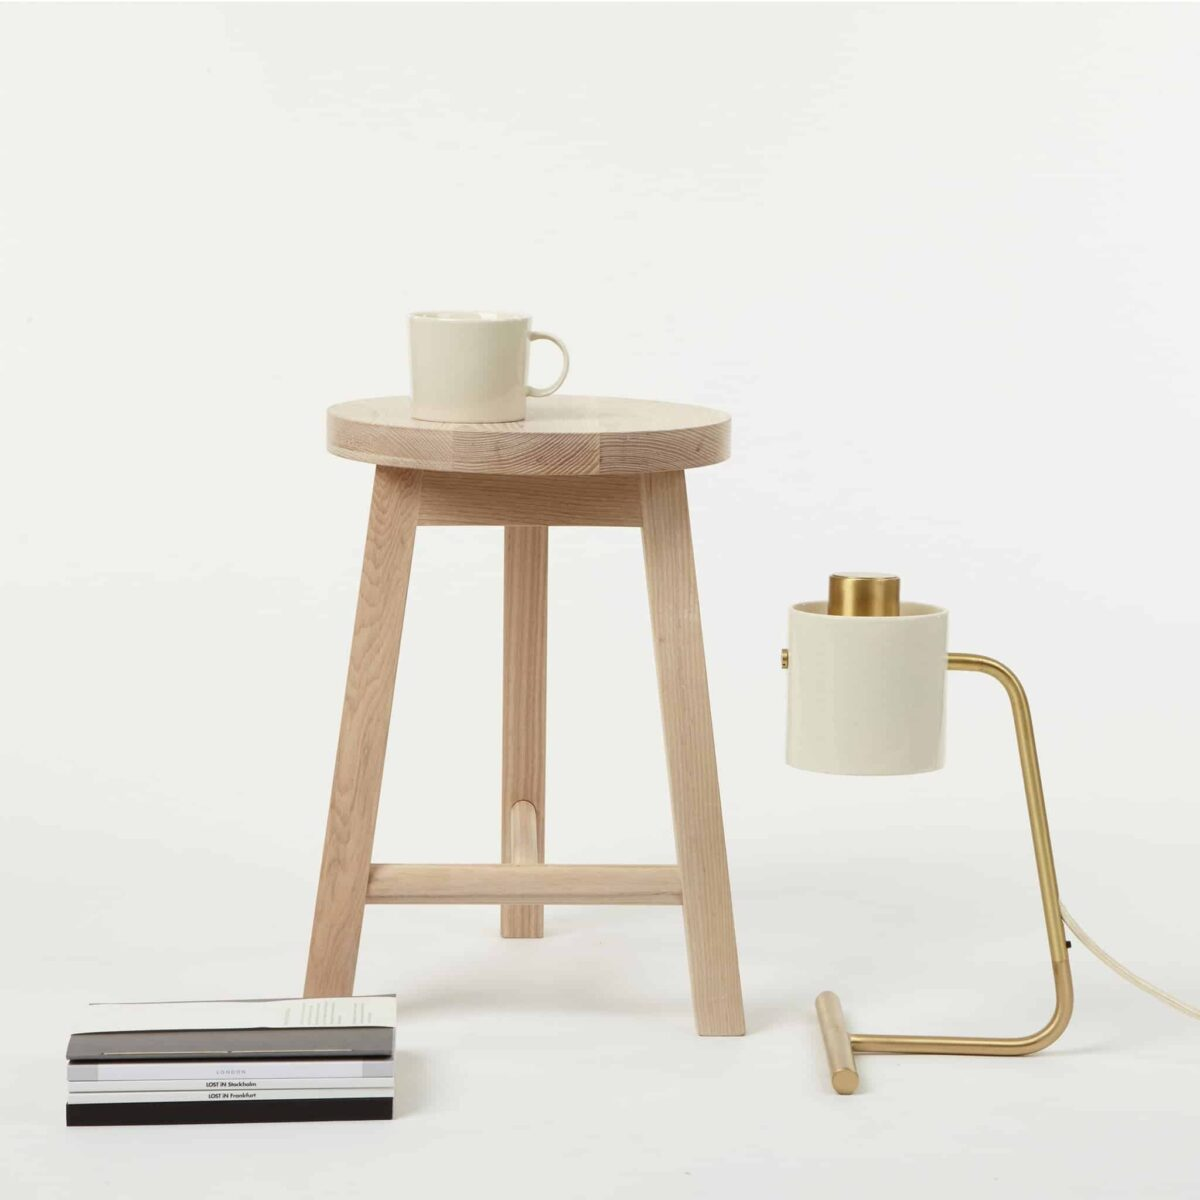 series-two-stool-round-ash-another-country-004